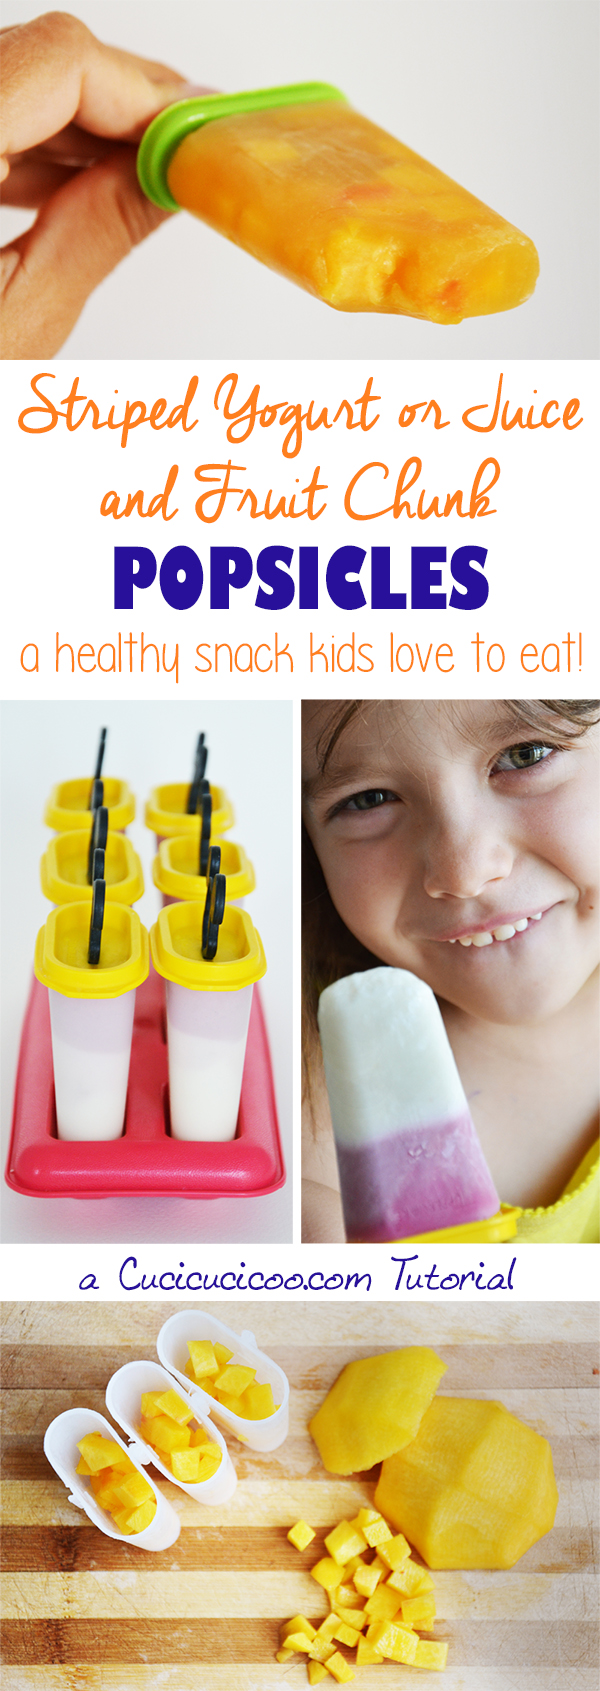 Jazz up your healthy homemade summer treats and make striped popsicles with yogurt or juice, or textured fresh fruit popsicles! Be creative and have fun!